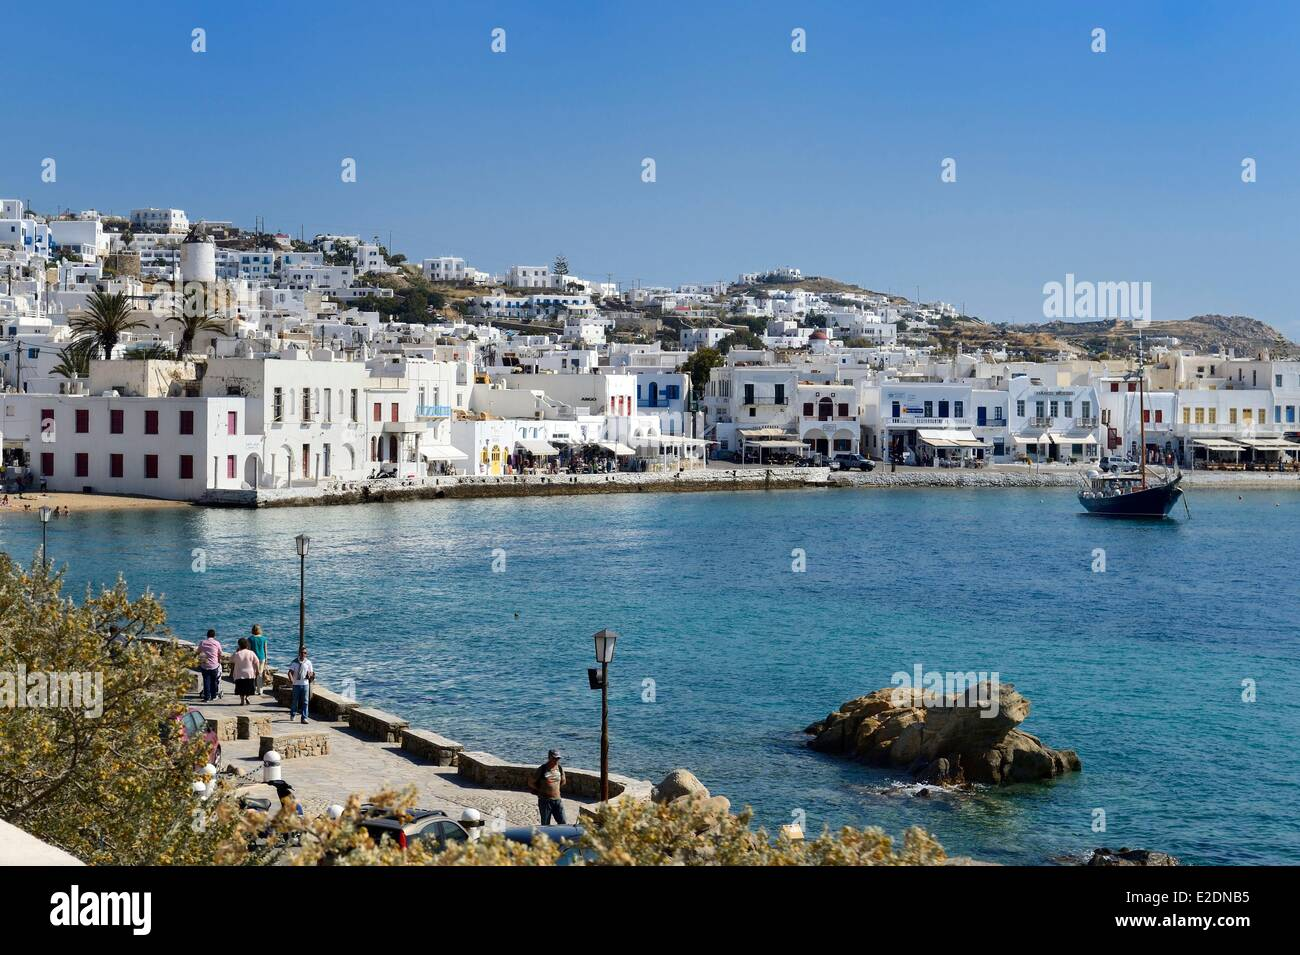 Greece Cyclades islands Mykonos island Chora (Mykonos town) the old harbour - Stock Image